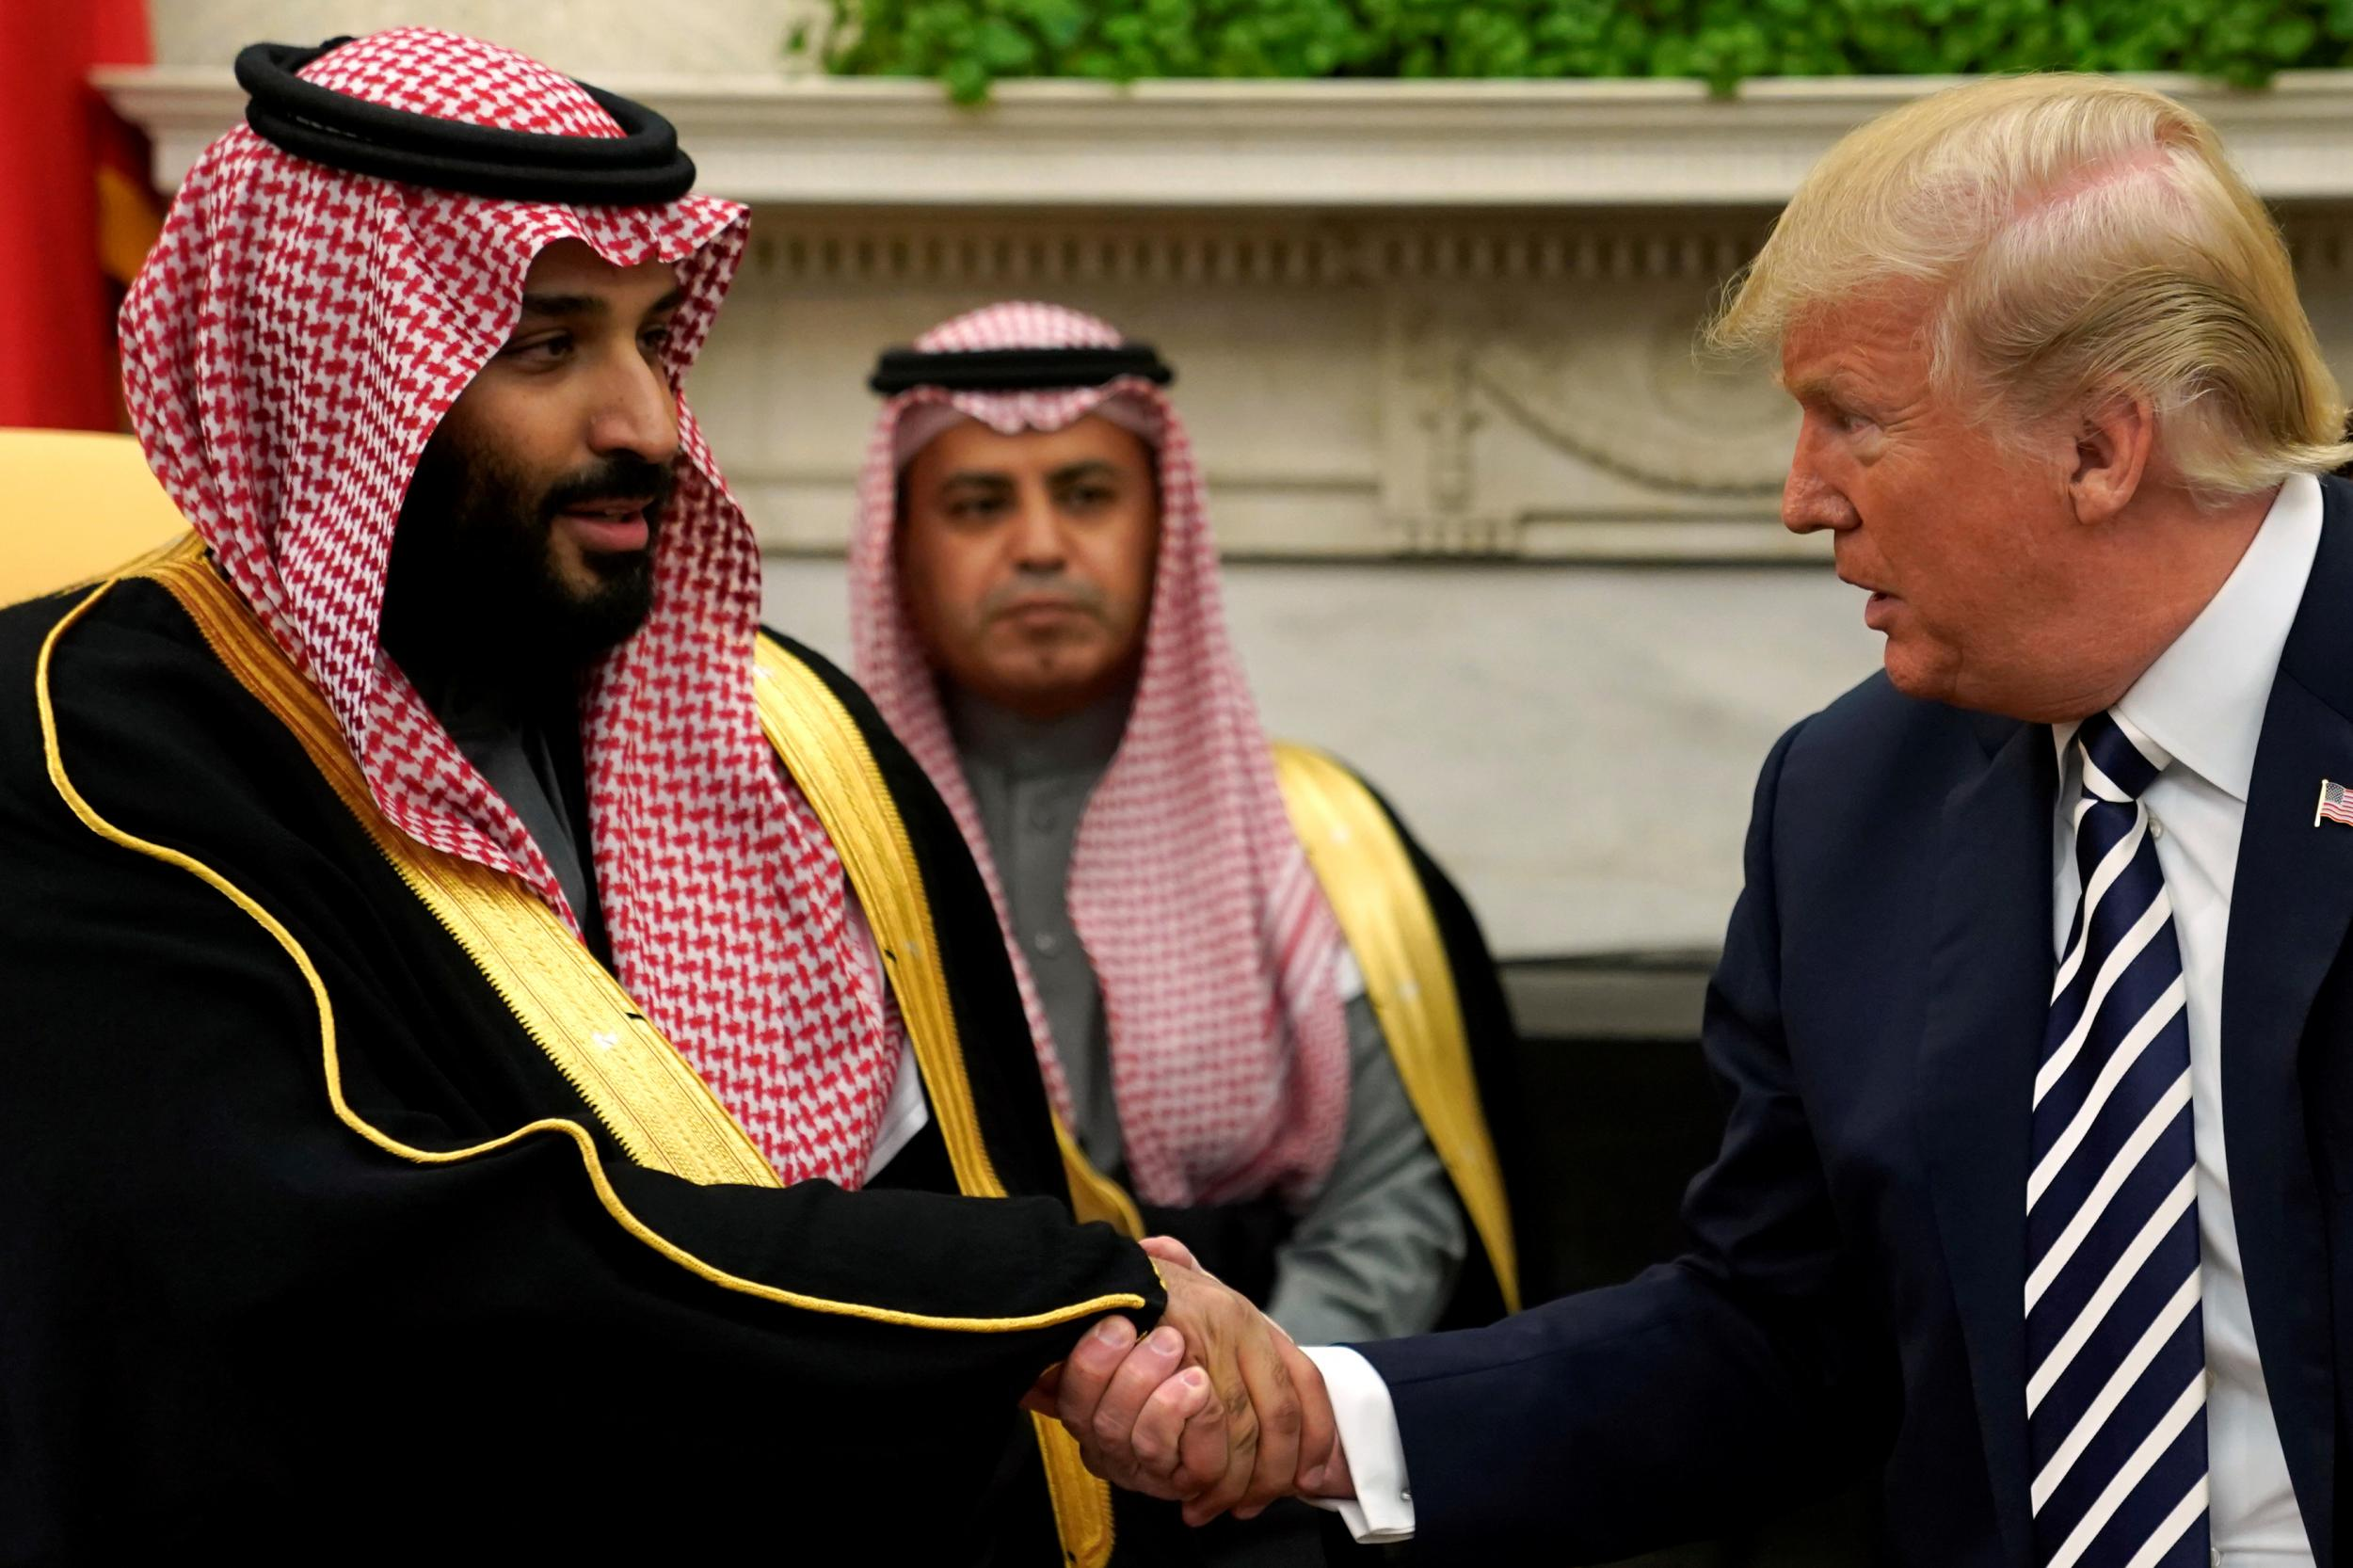 Mohammad Bin Salman US visit: Leaked itinerary shows Saudi Crown Prince to  meet Oprah, politicians and media bosses